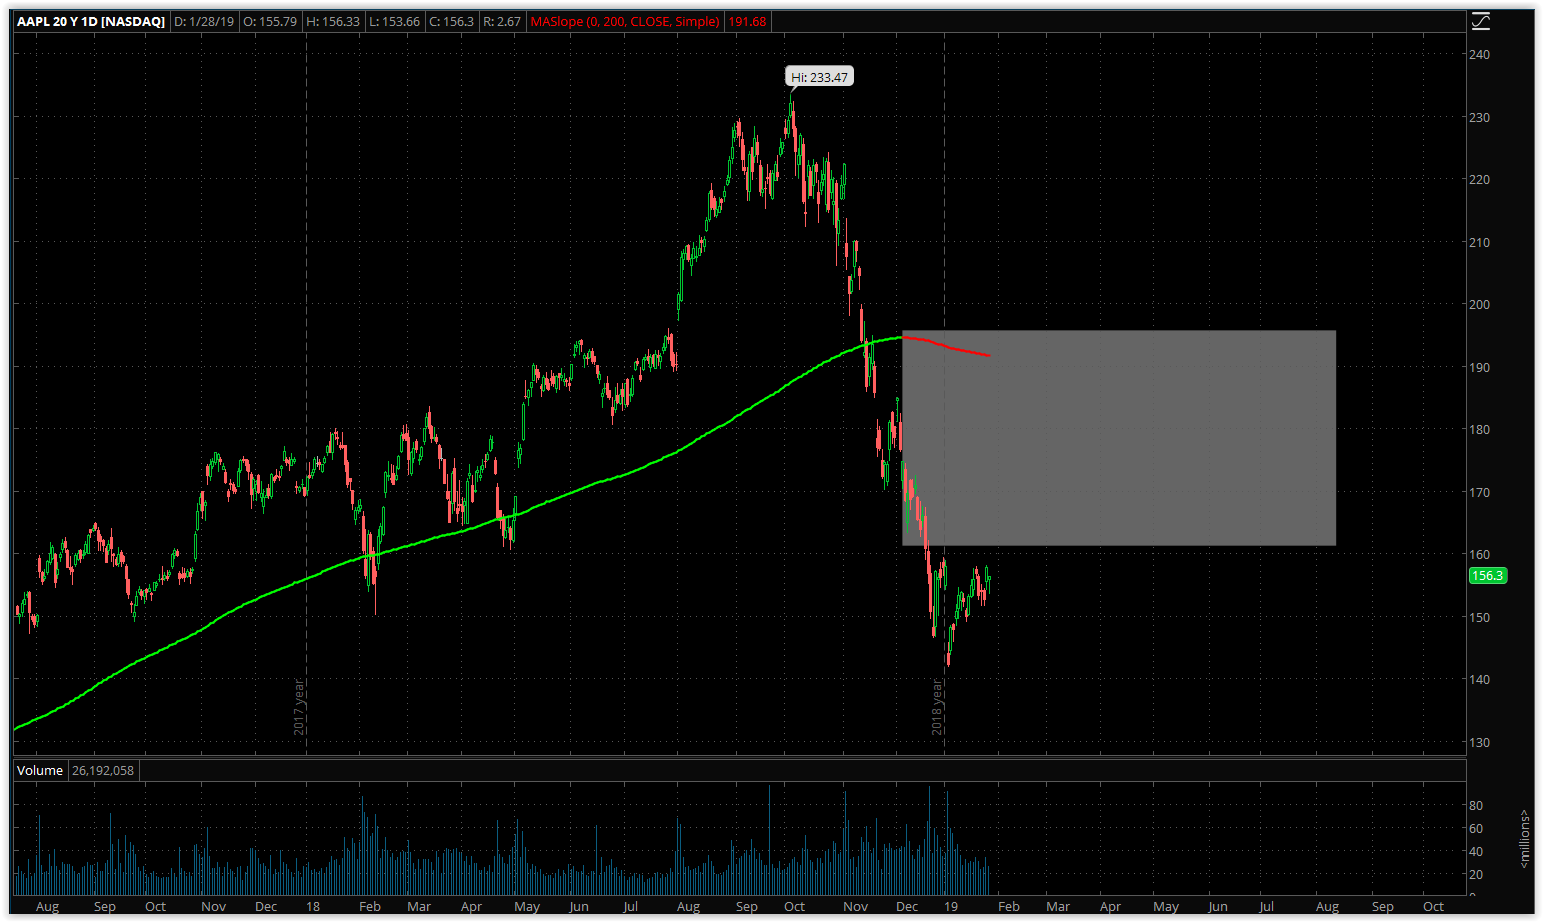 Apple: Potential To Miss And Continue Downtrend - Apple Inc